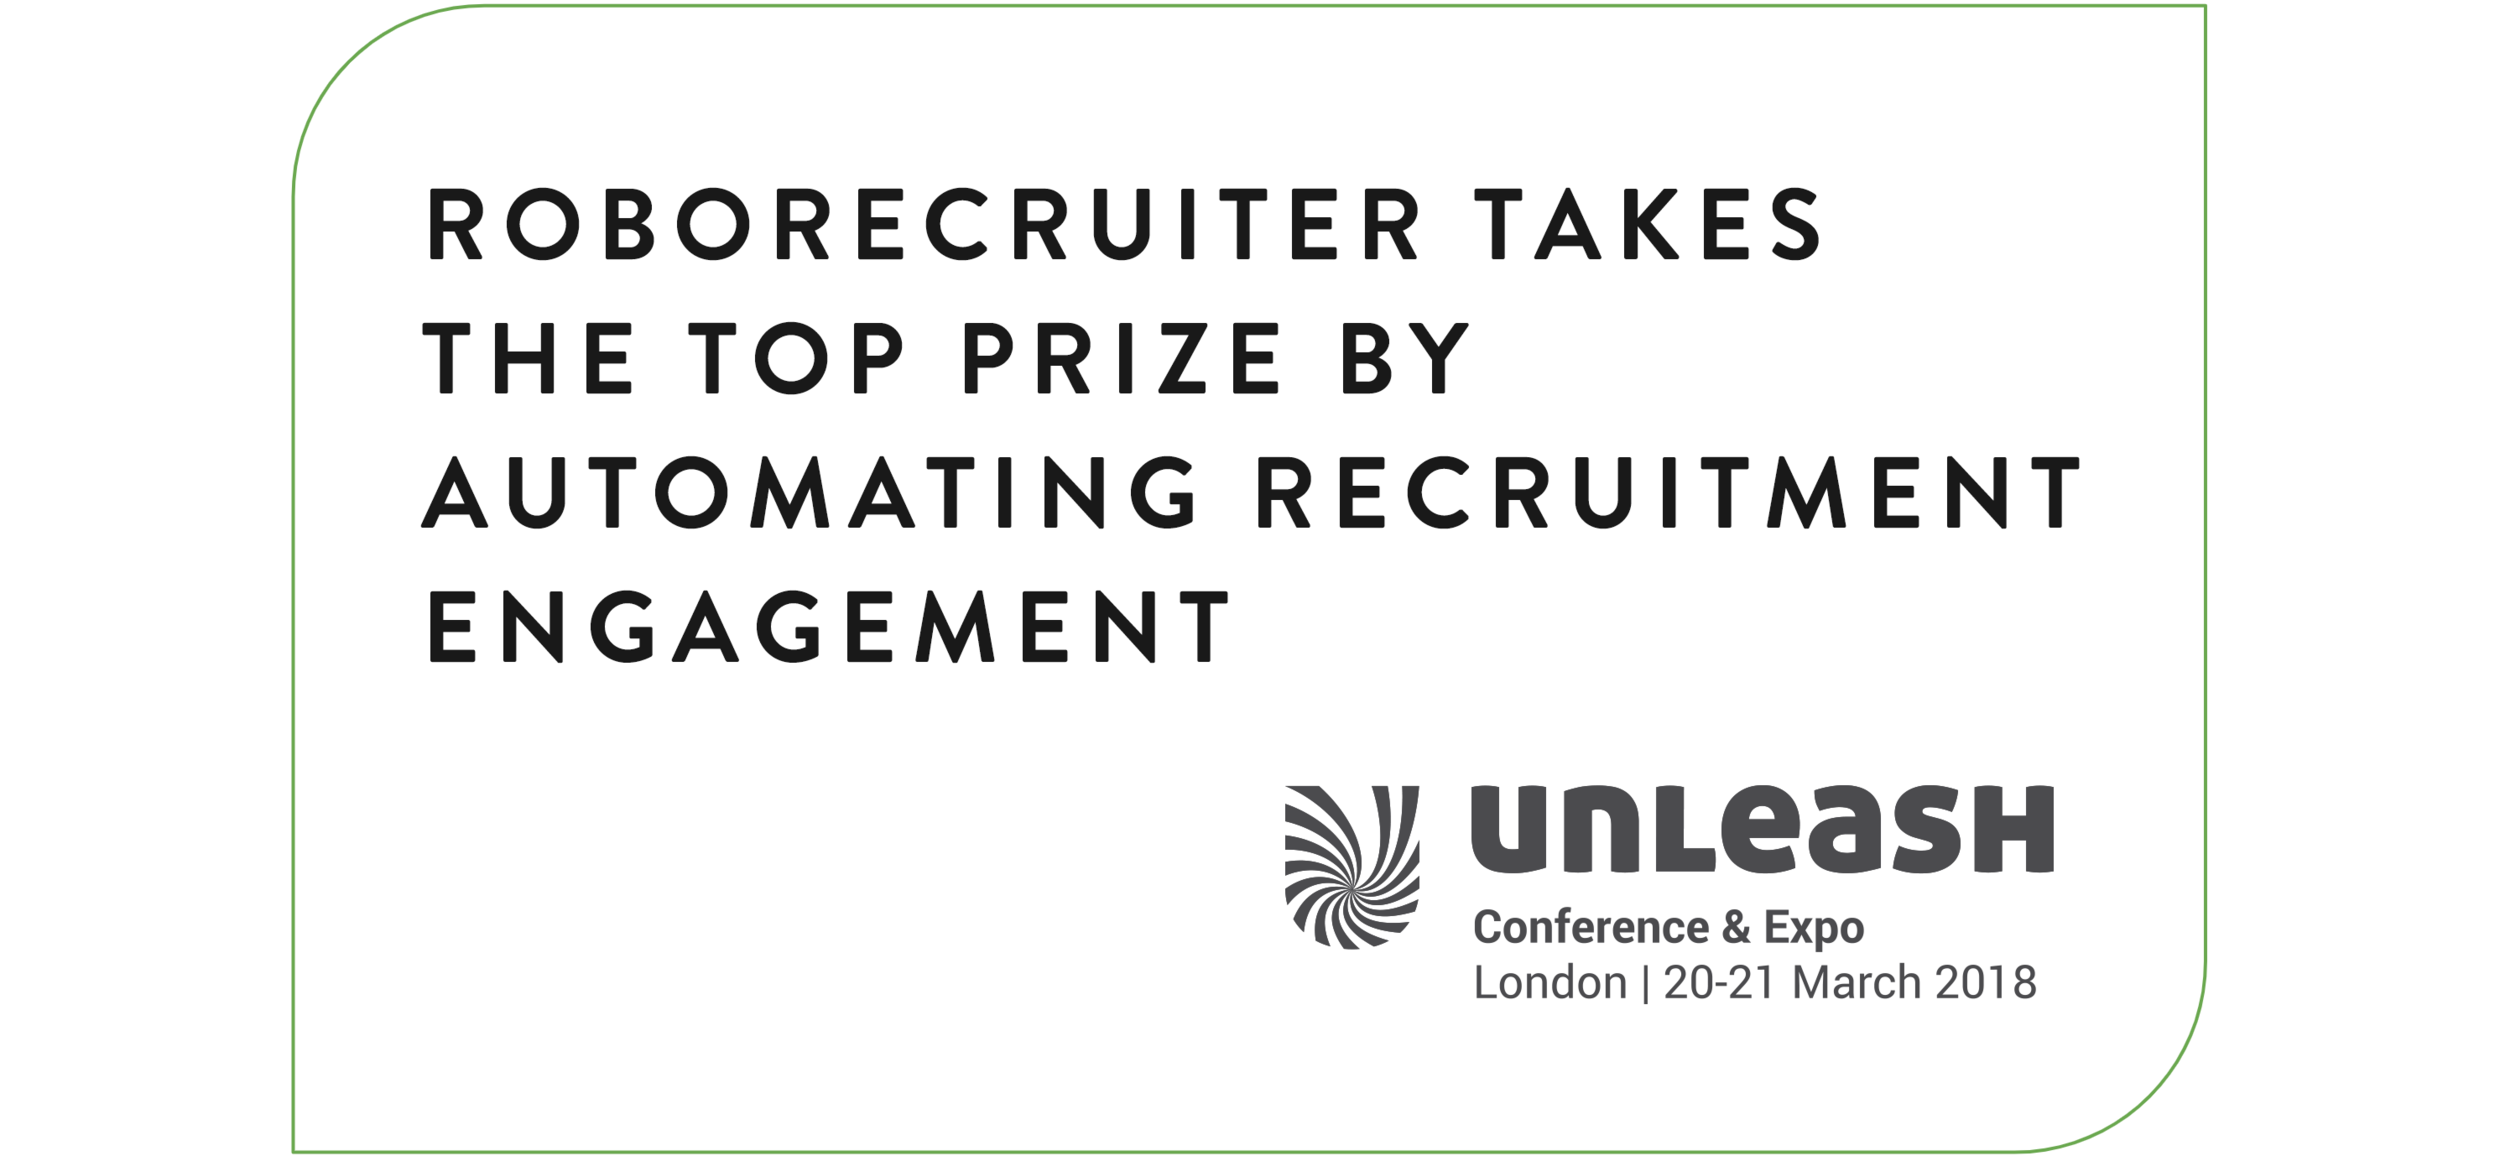 unleash quote-wide.png